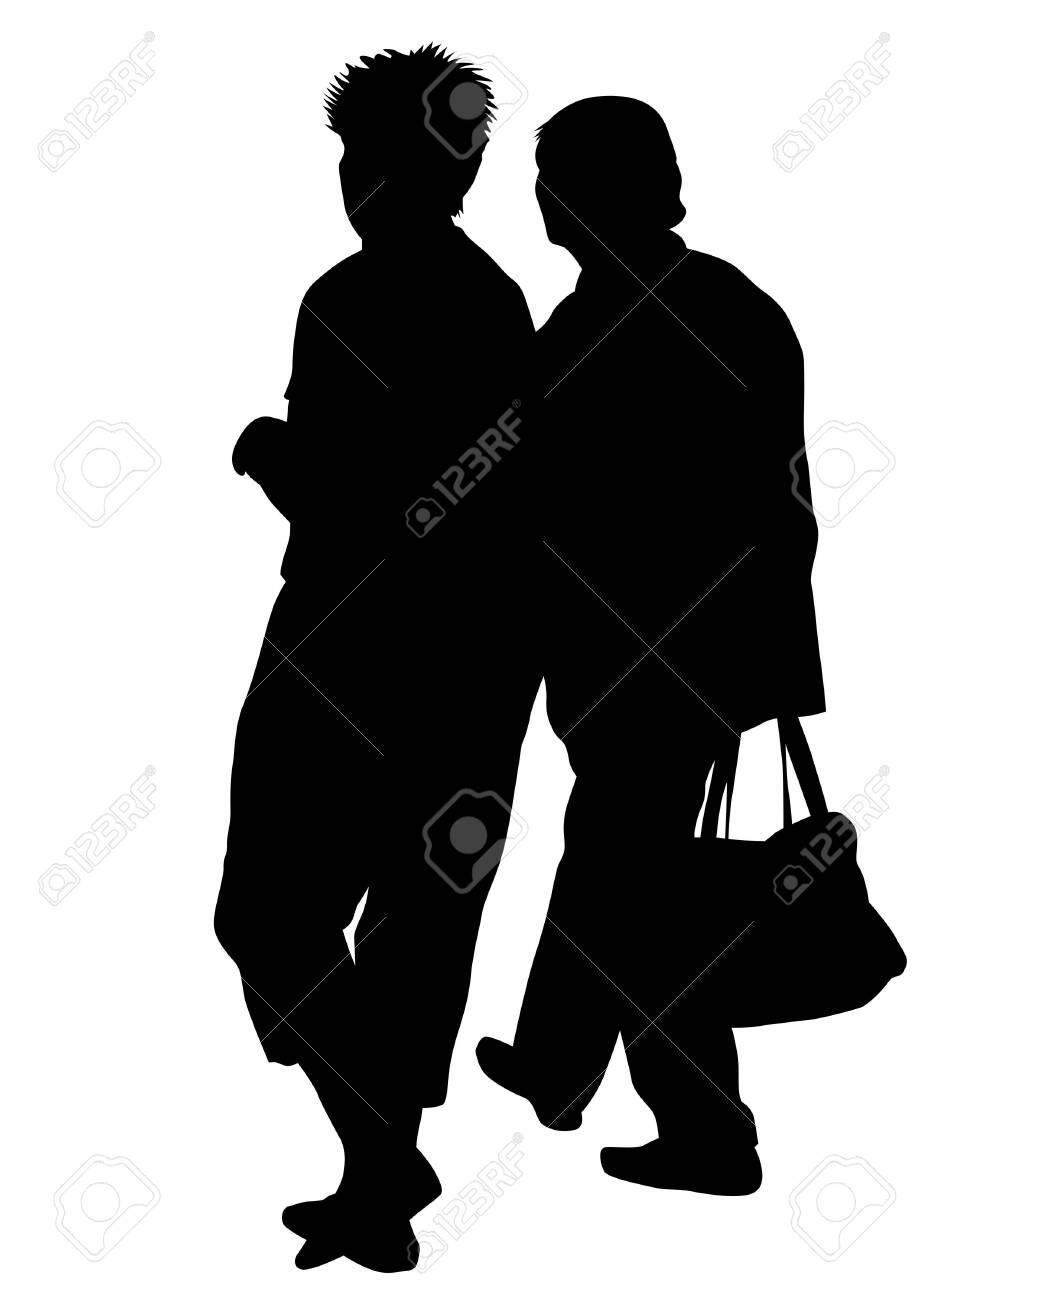 Elderly woman and man with a stick is walking down street. Isolated silhouette on a white background - 143539818